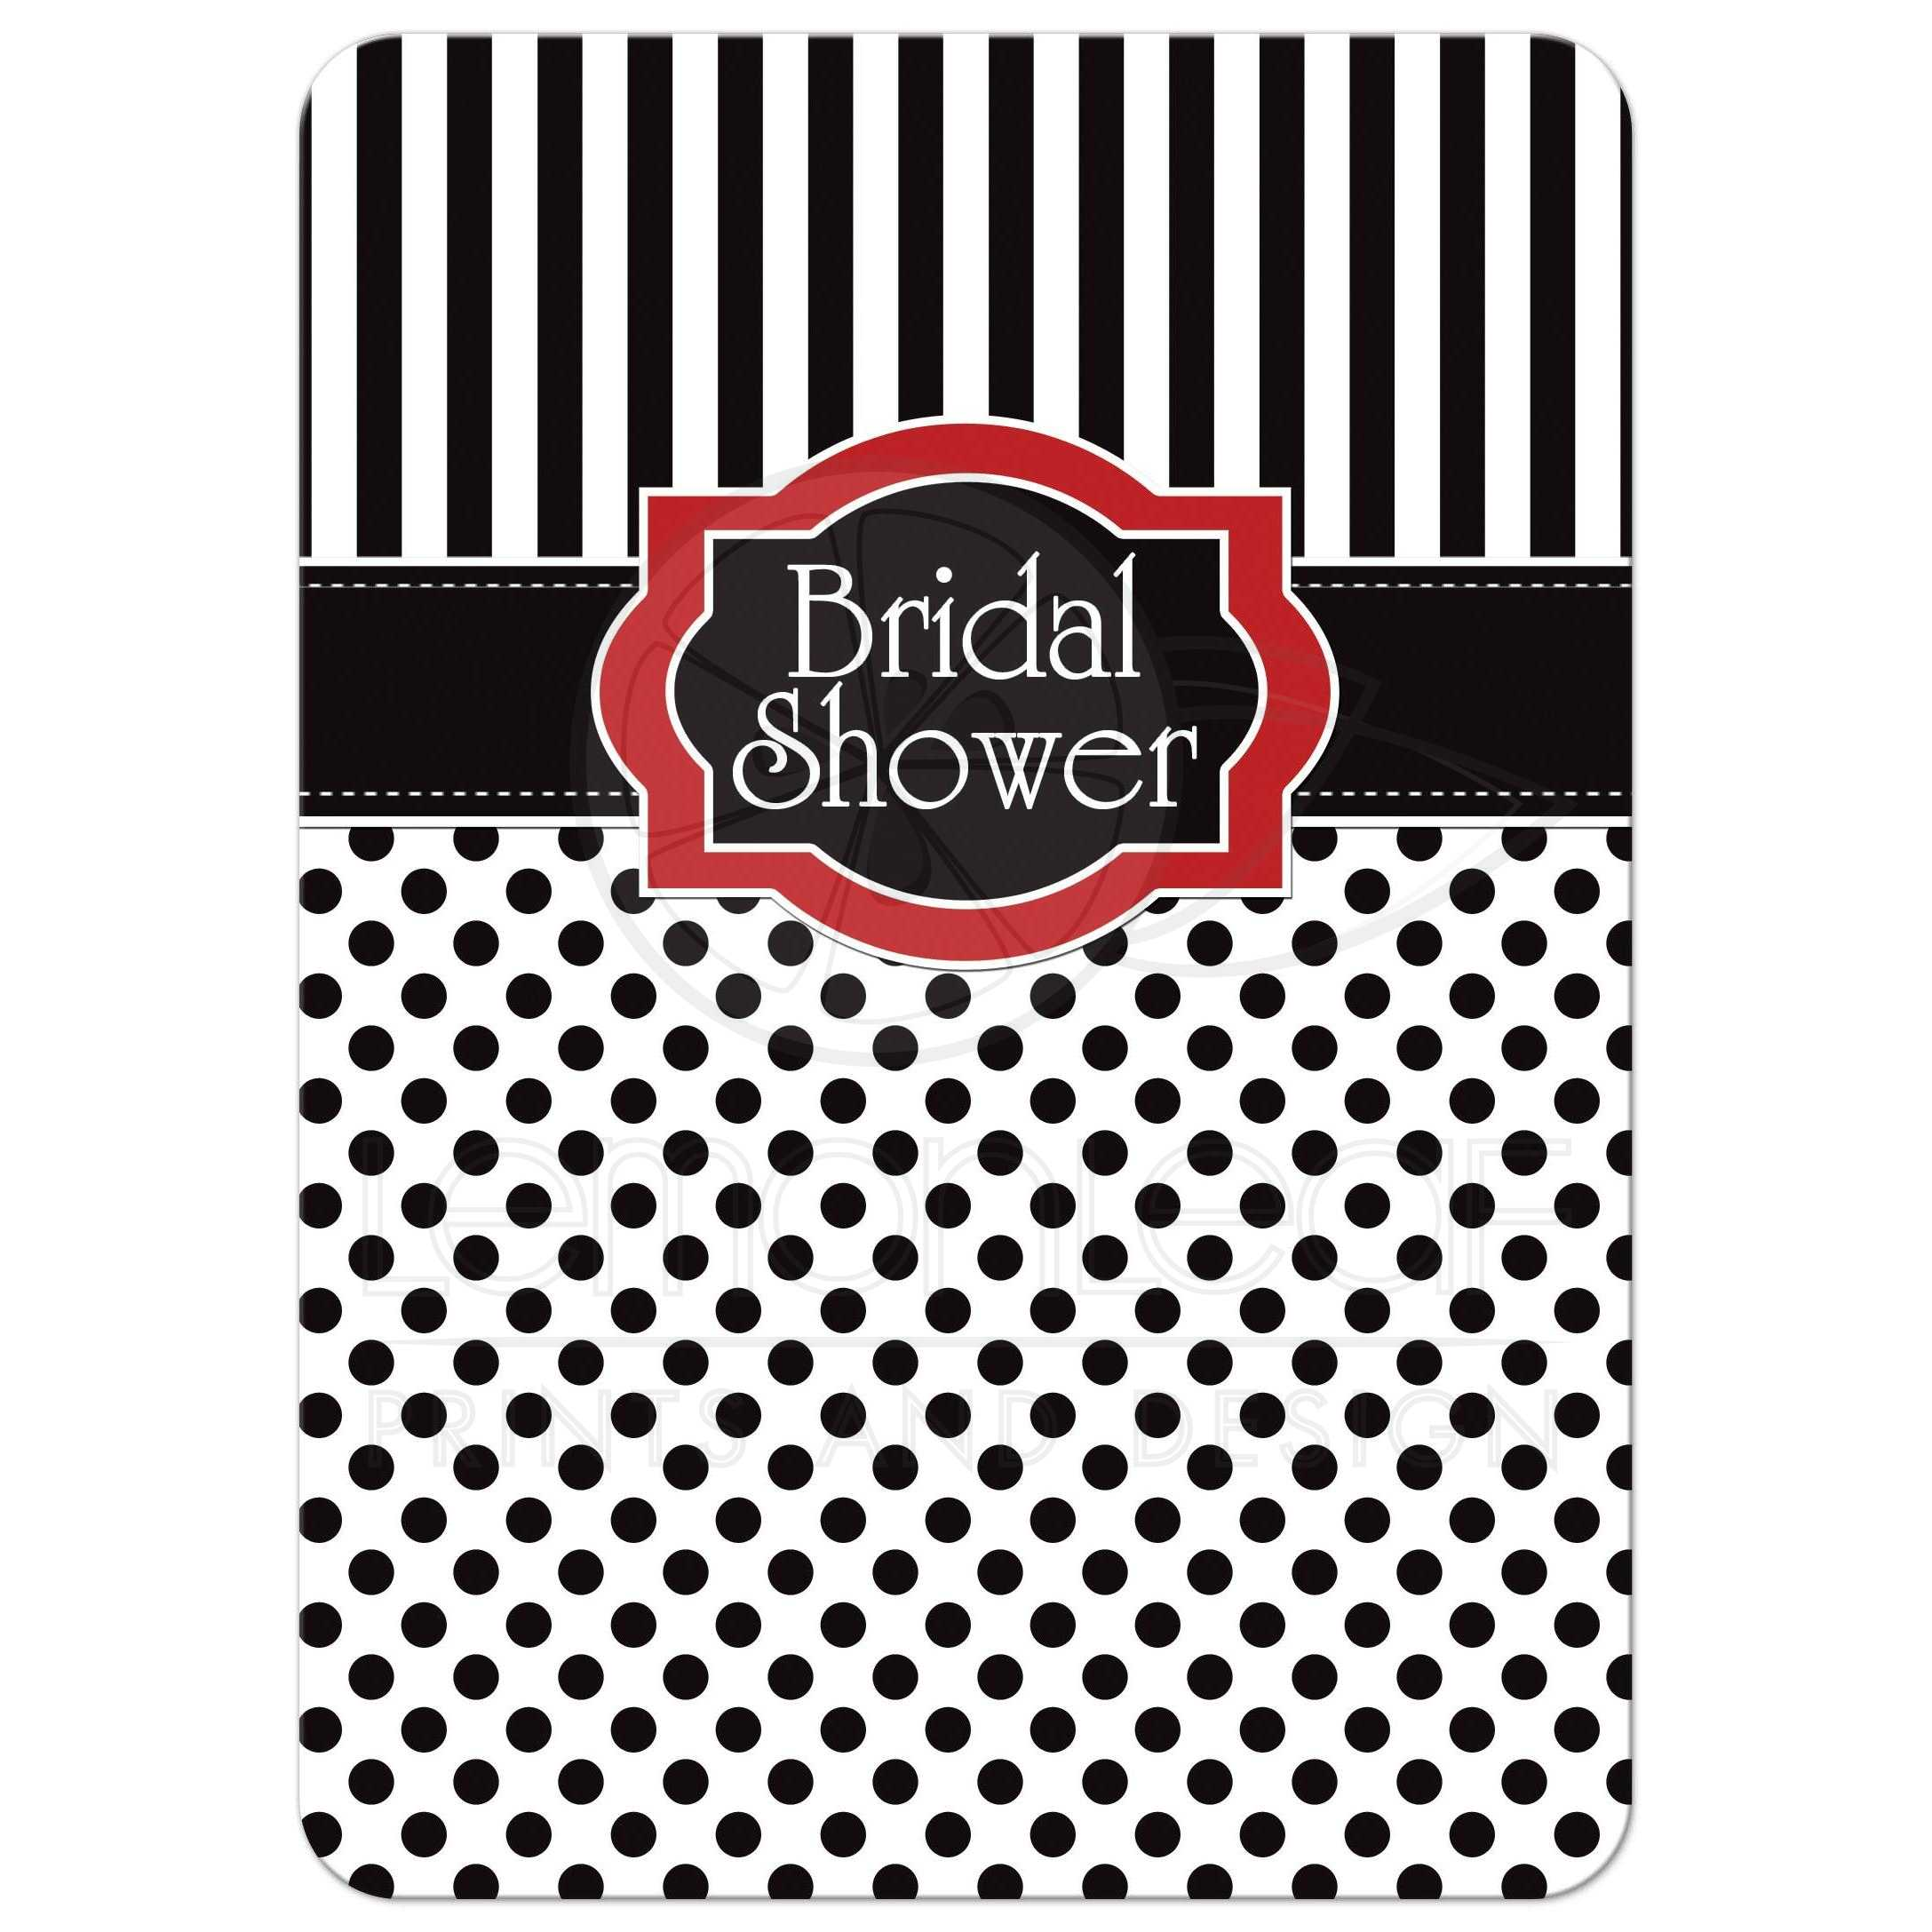 Bridal shower invitation black white red polka dots and stripes great black and white striped bridal or wedding shower invitation with polka dots and red accents filmwisefo